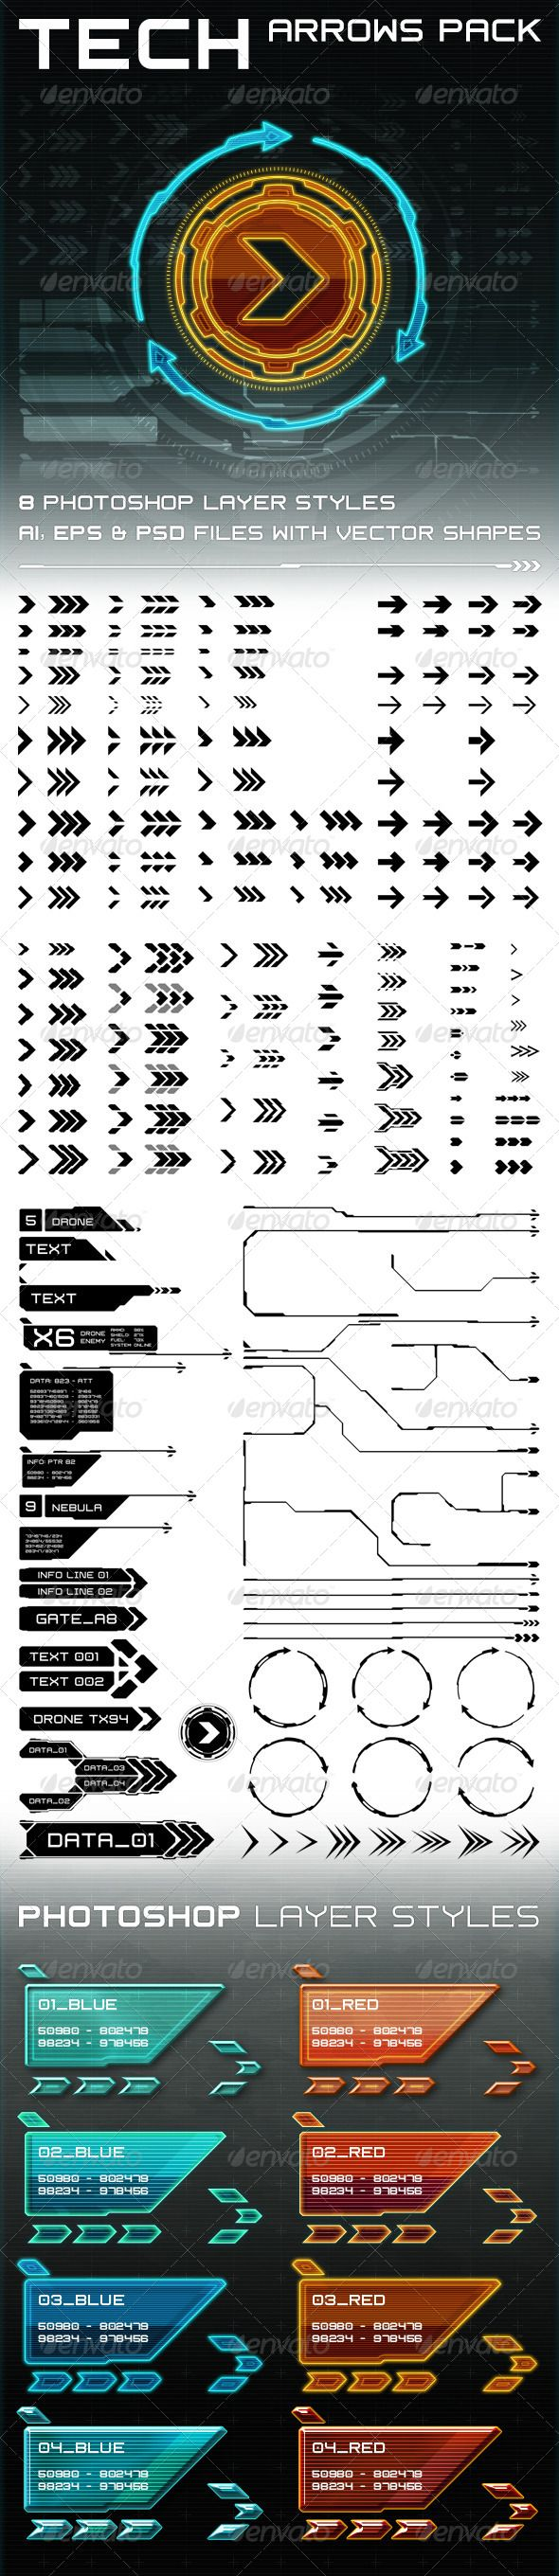 Tech Arrows Pack by CGcube on Envato